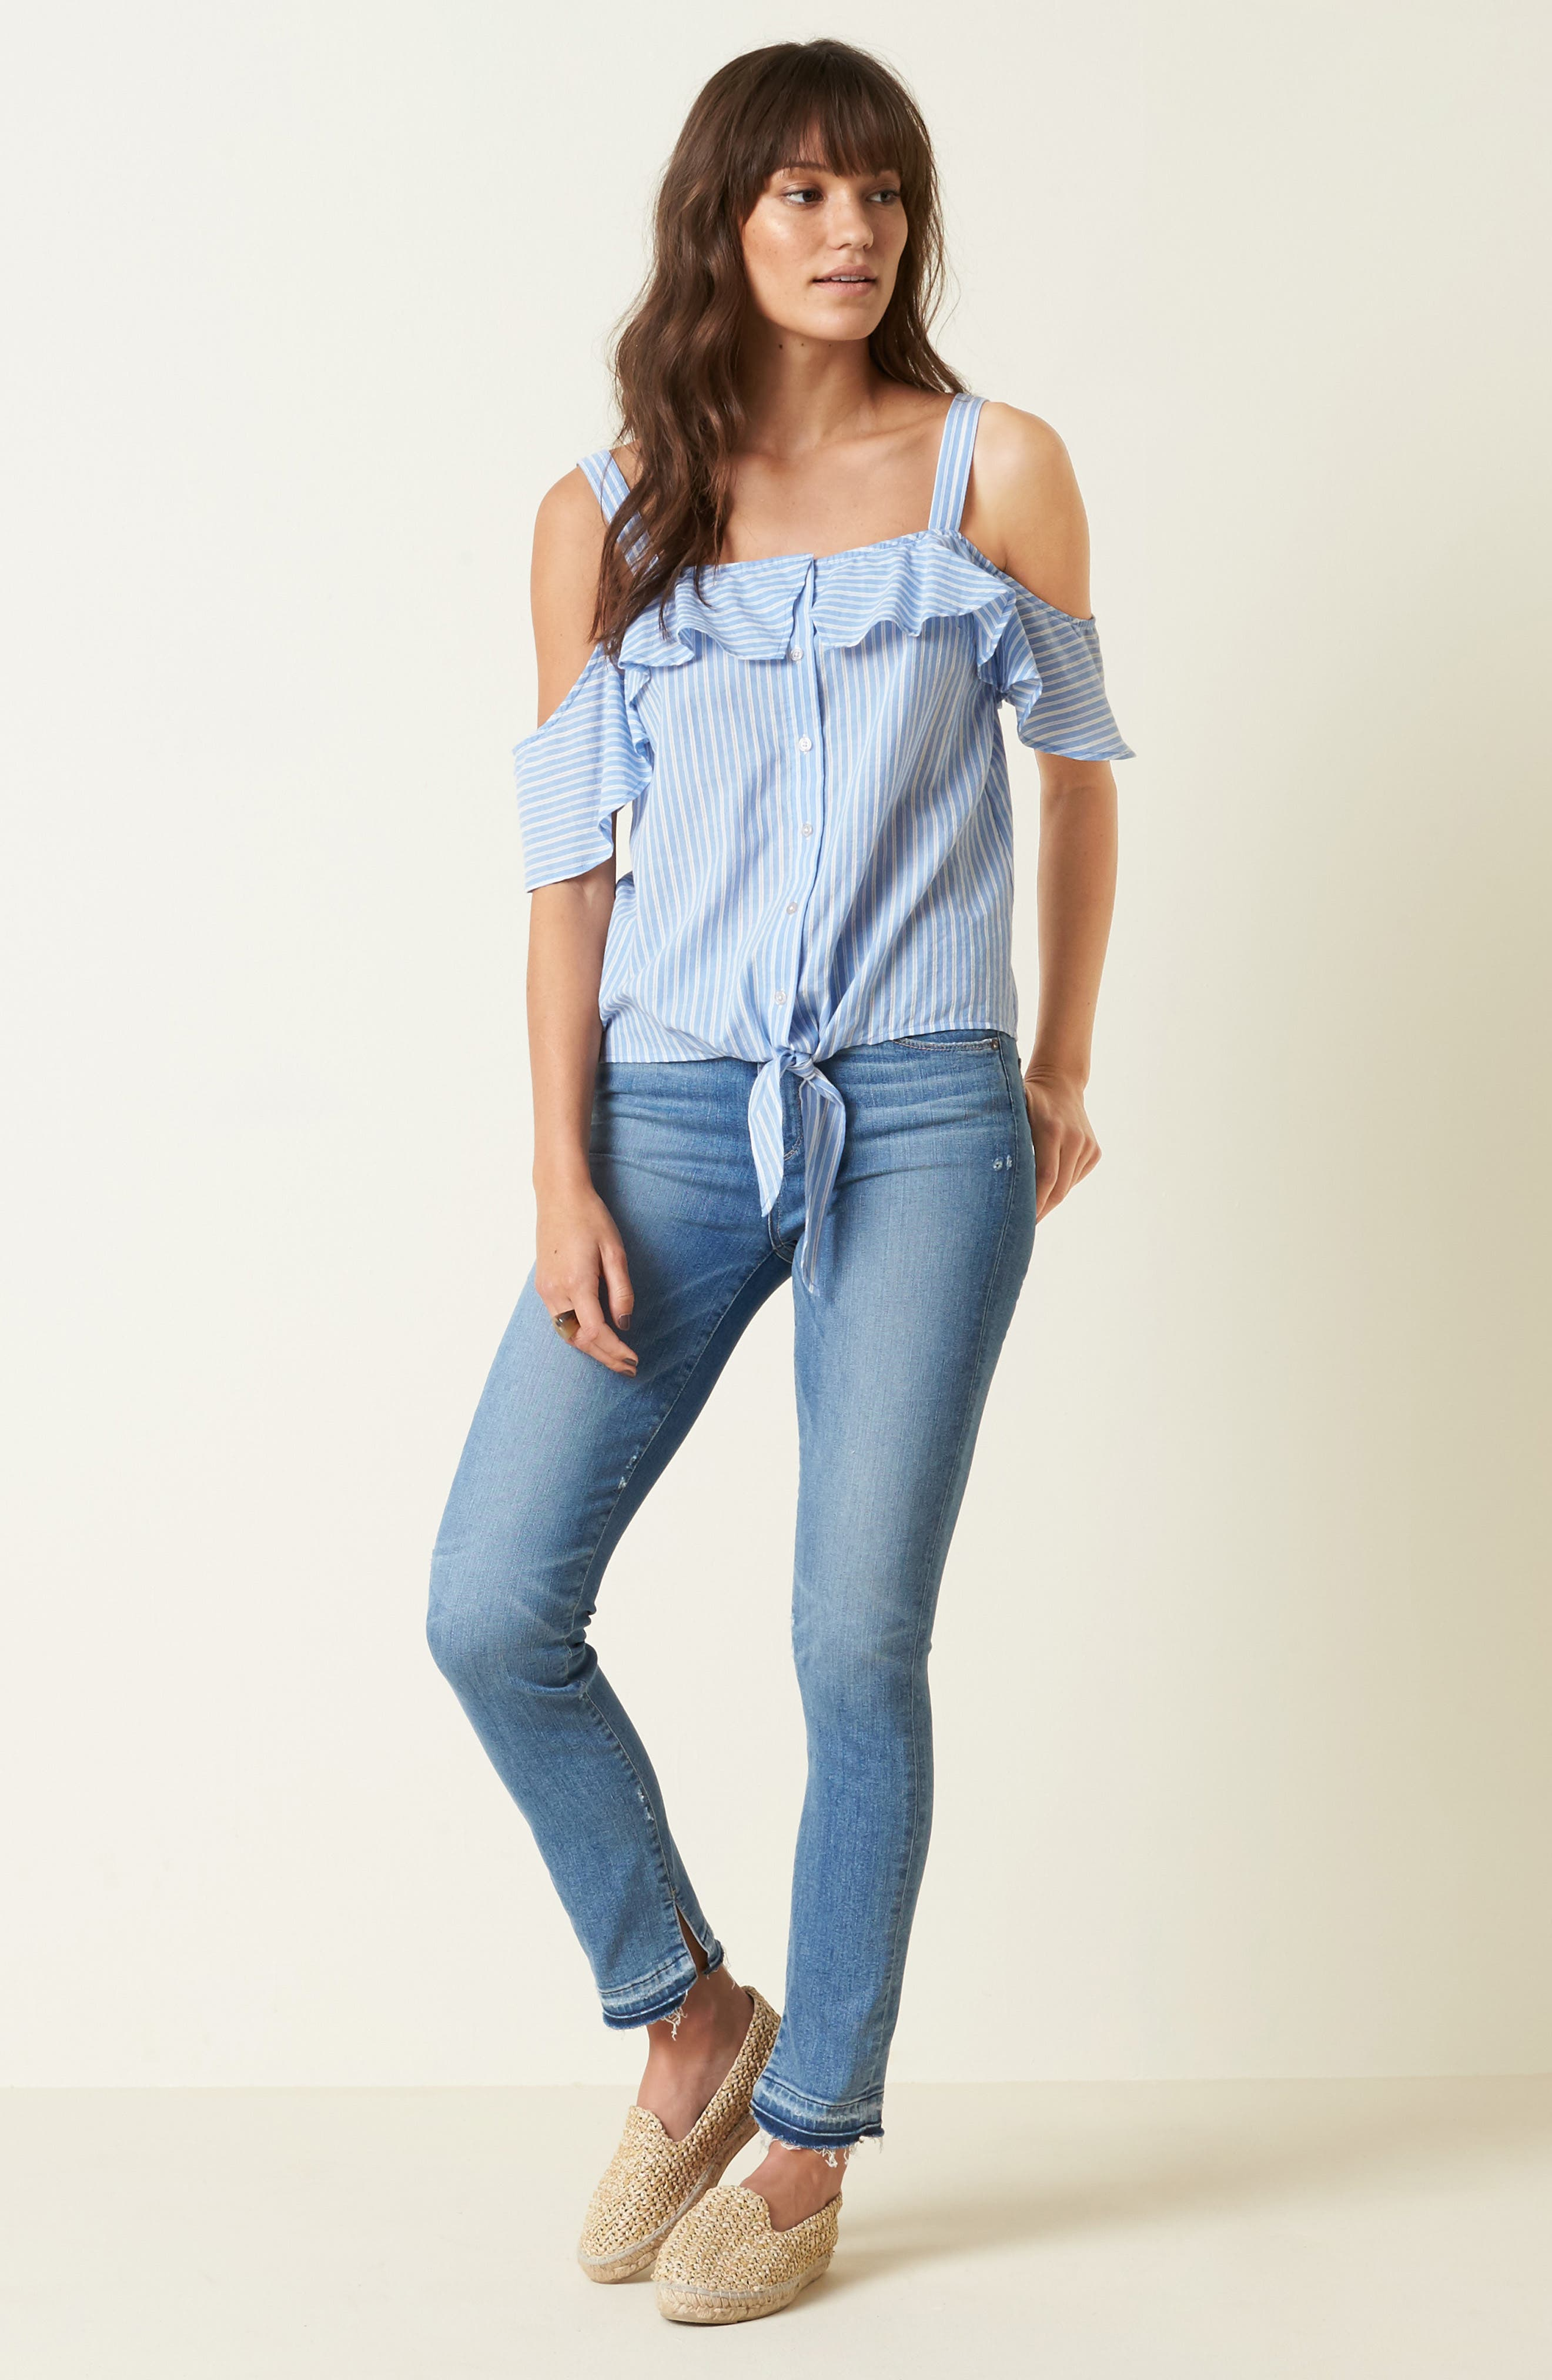 PAIGE Top & Jeans Outfit with Accessories